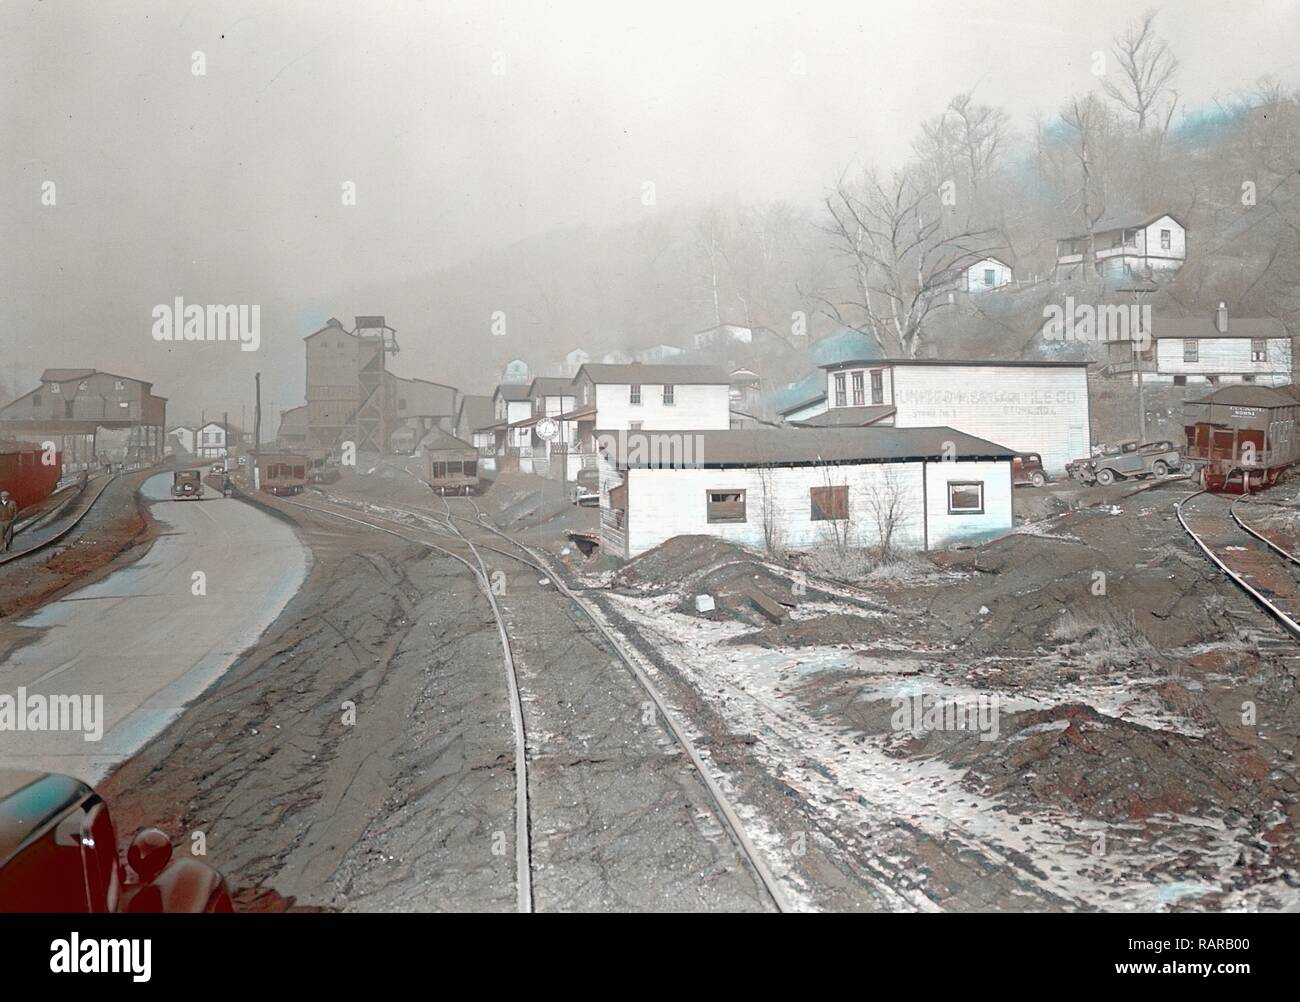 Scott's Run, West Virginia. Pursglove Mines Nos. 3 and 4 - This is the largest company of Scott's Run. Scene shows reimagined - Stock Image